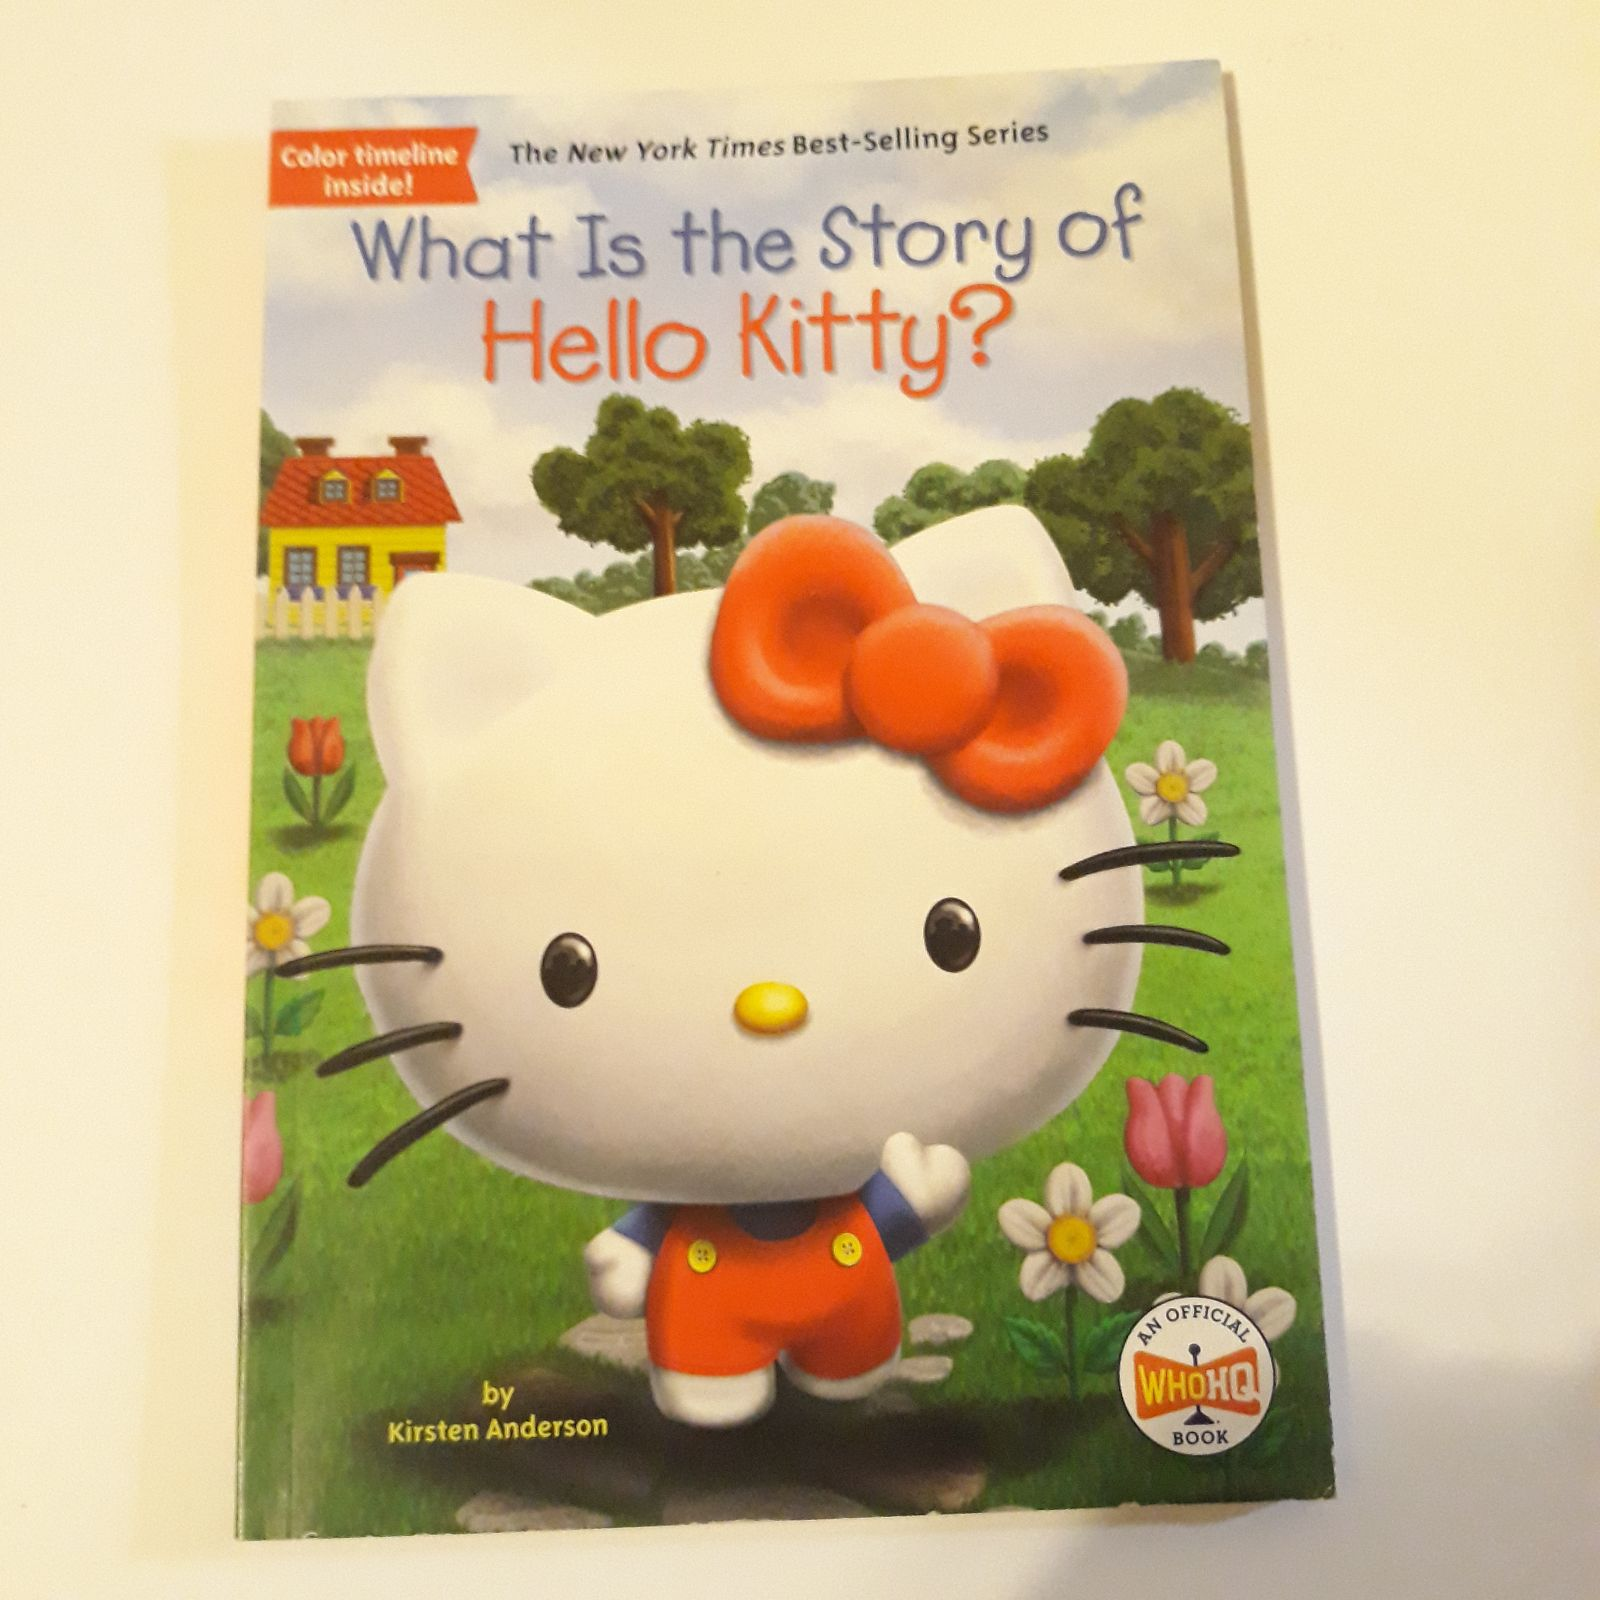 Hello kitty WhoHQ book illustrated book